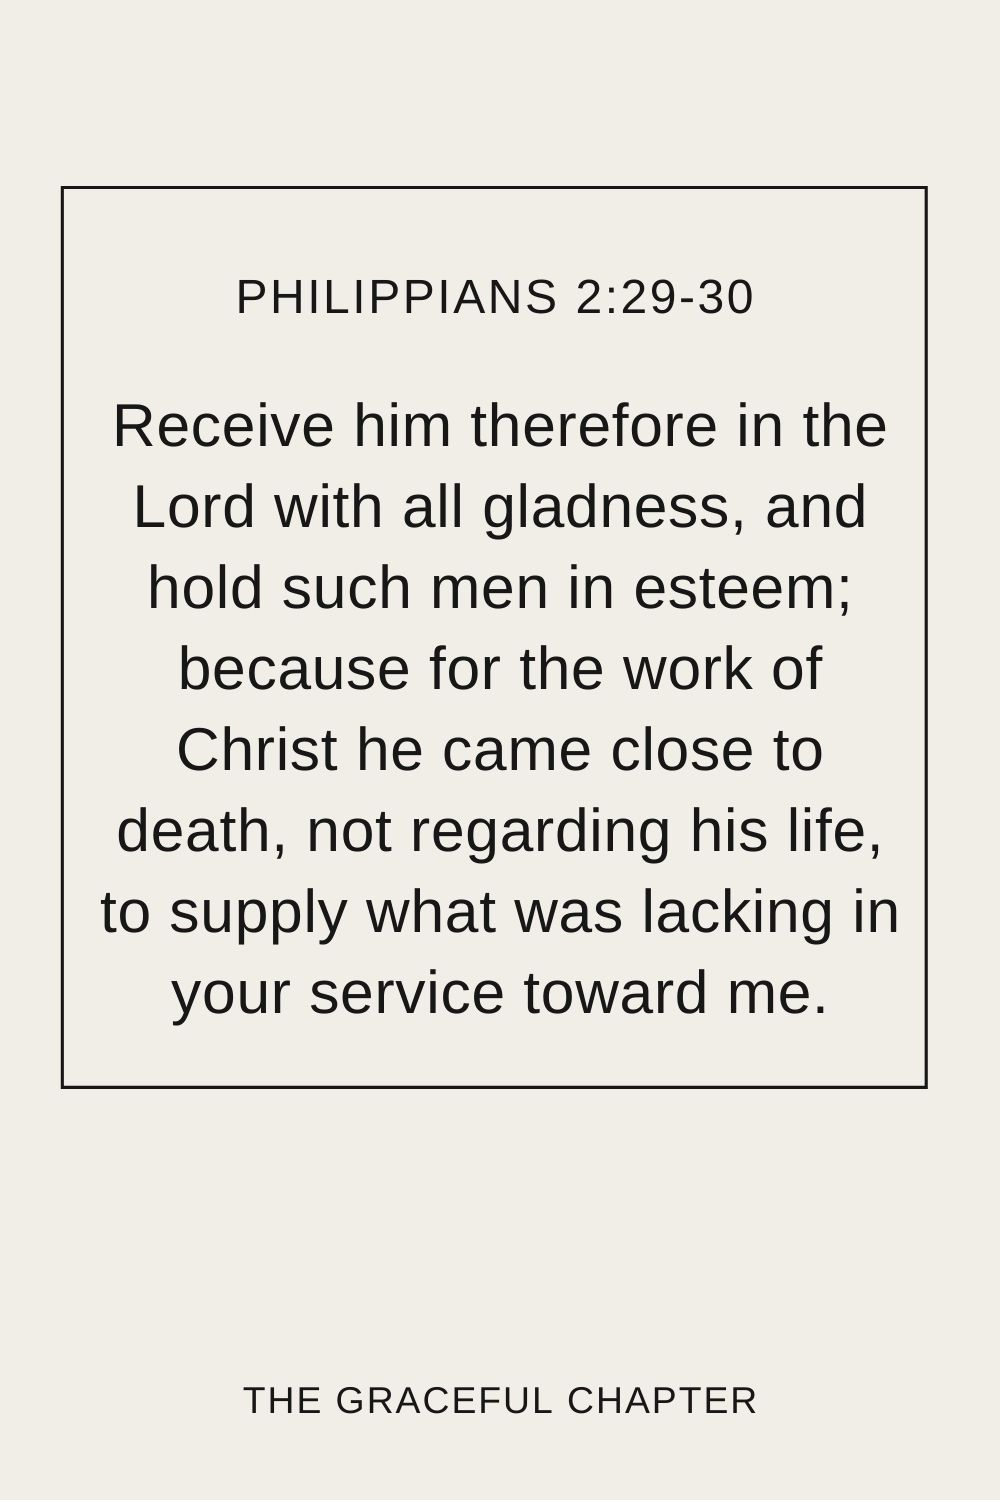 Receive him therefore in the Lord with all gladness, and hold such men in esteem; because for the work of Christ he came close to death, not regarding his life, to supply what was lacking in your service toward me. Philippians 2:29-30